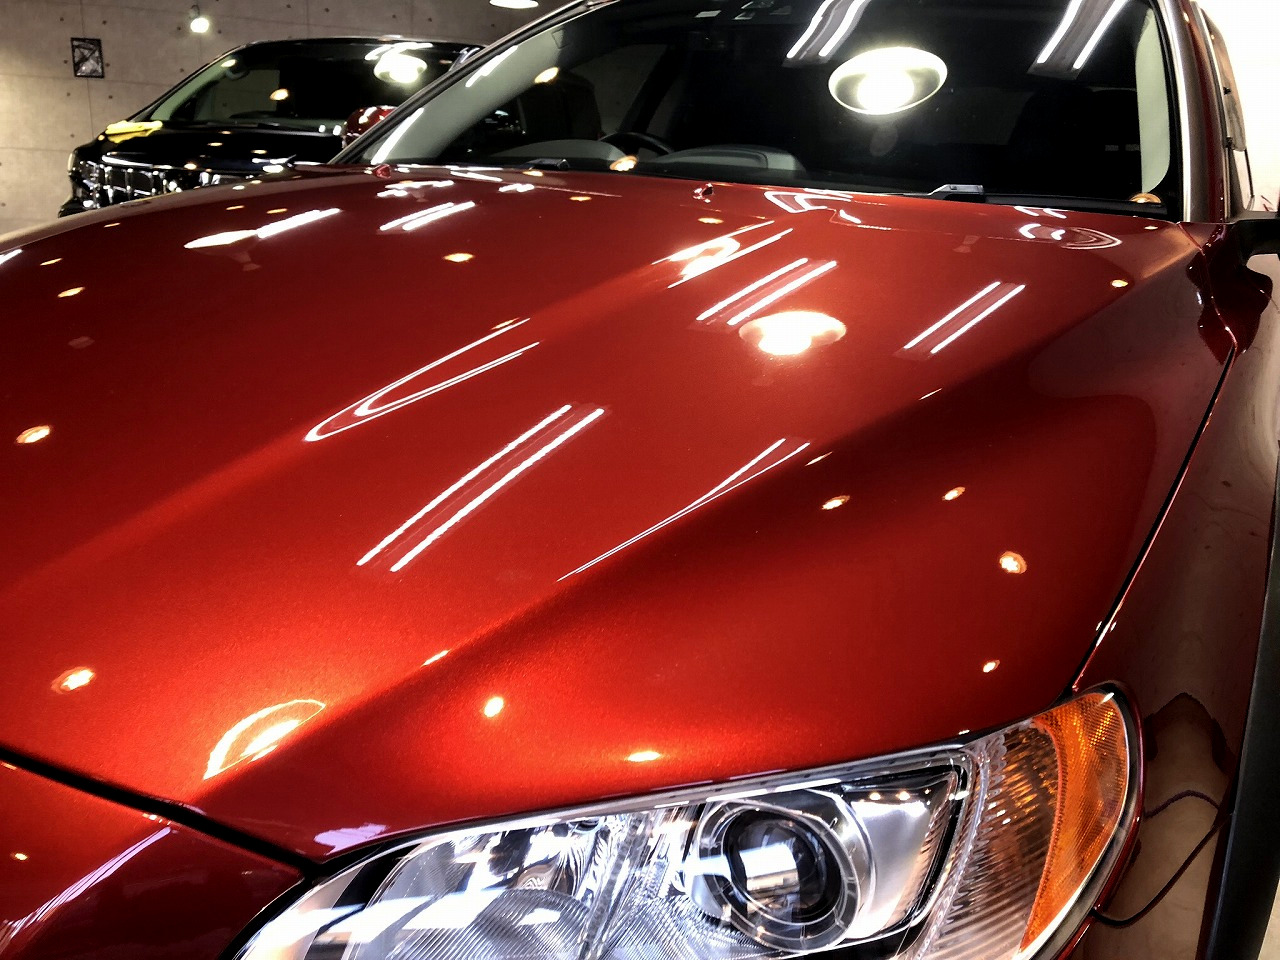 xc70_red_004